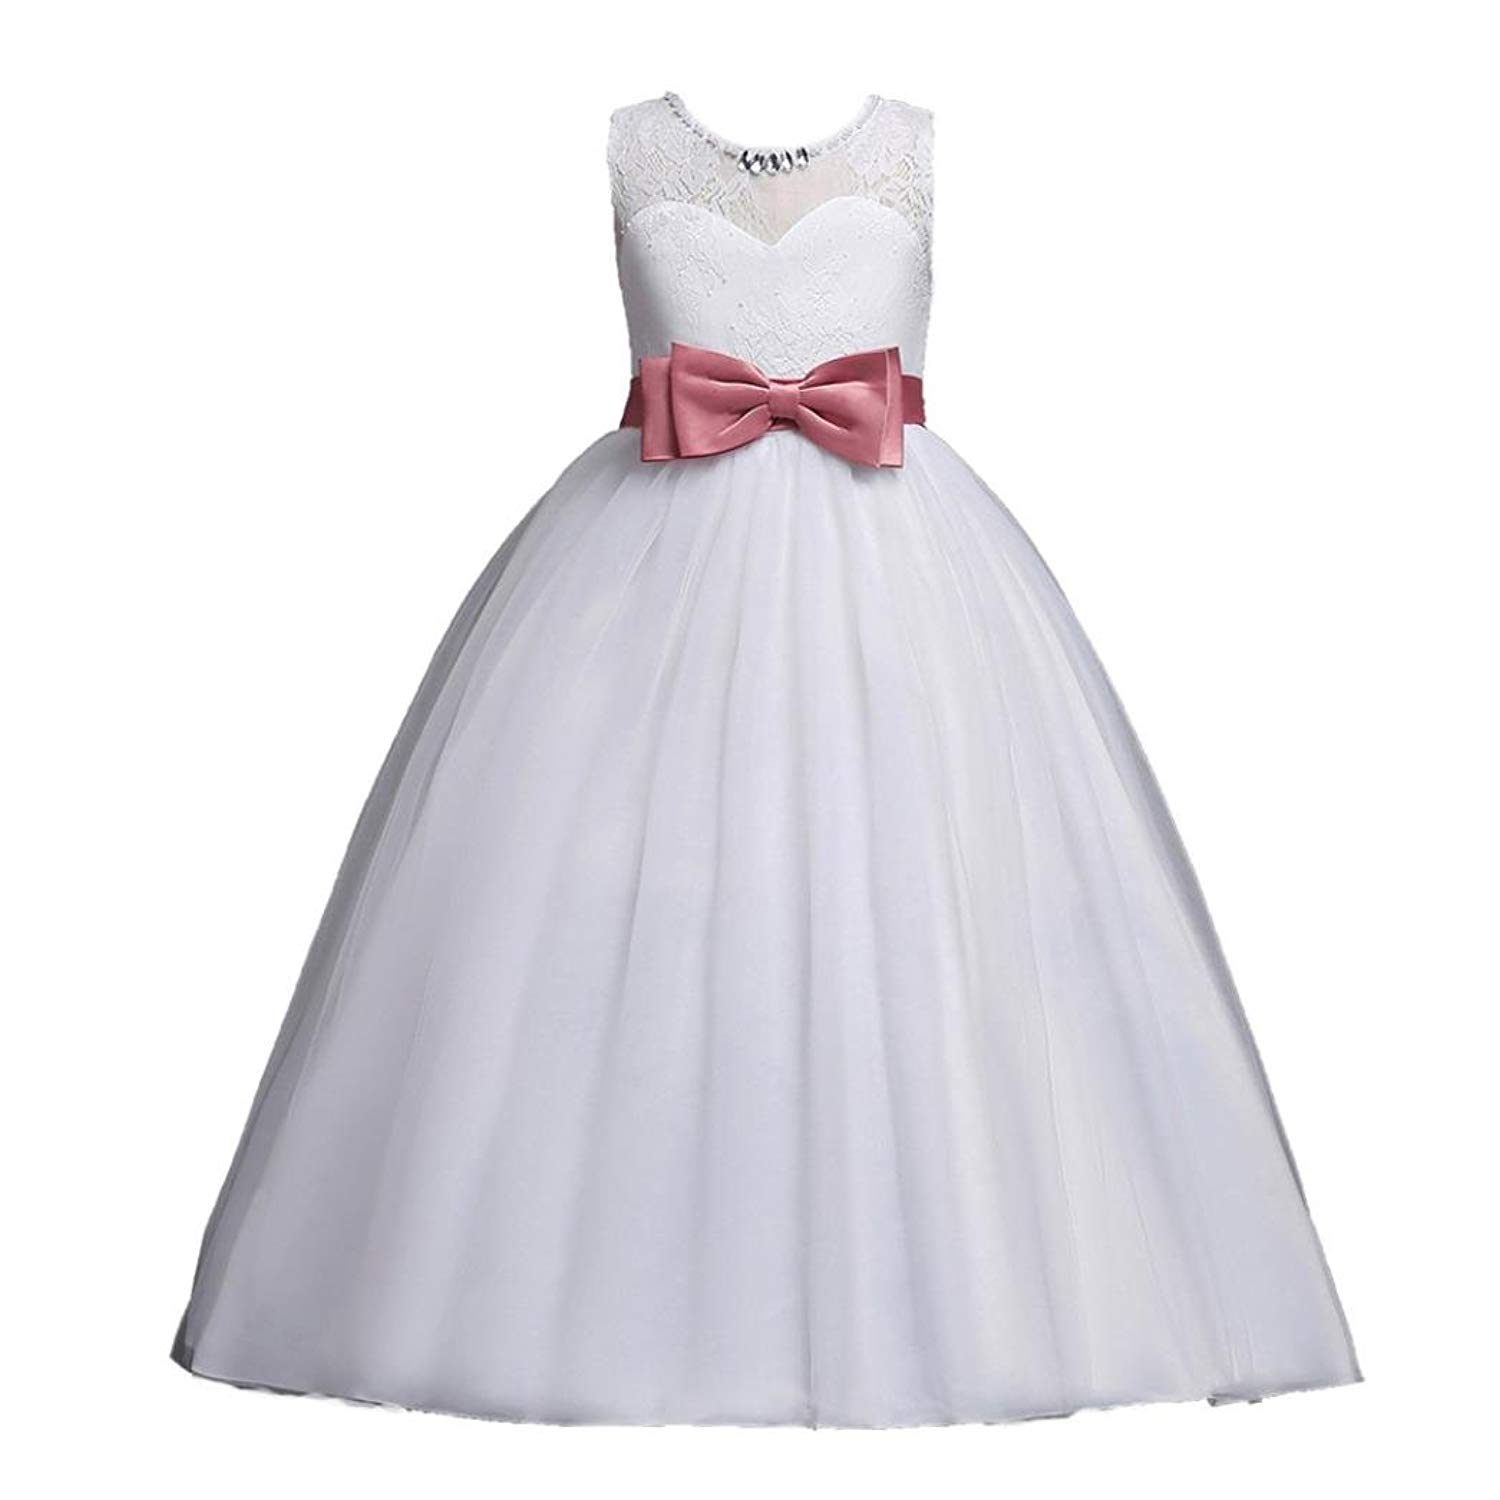 bdc3bb3a218 Get Quotations · Moonker Girls Princess Dress